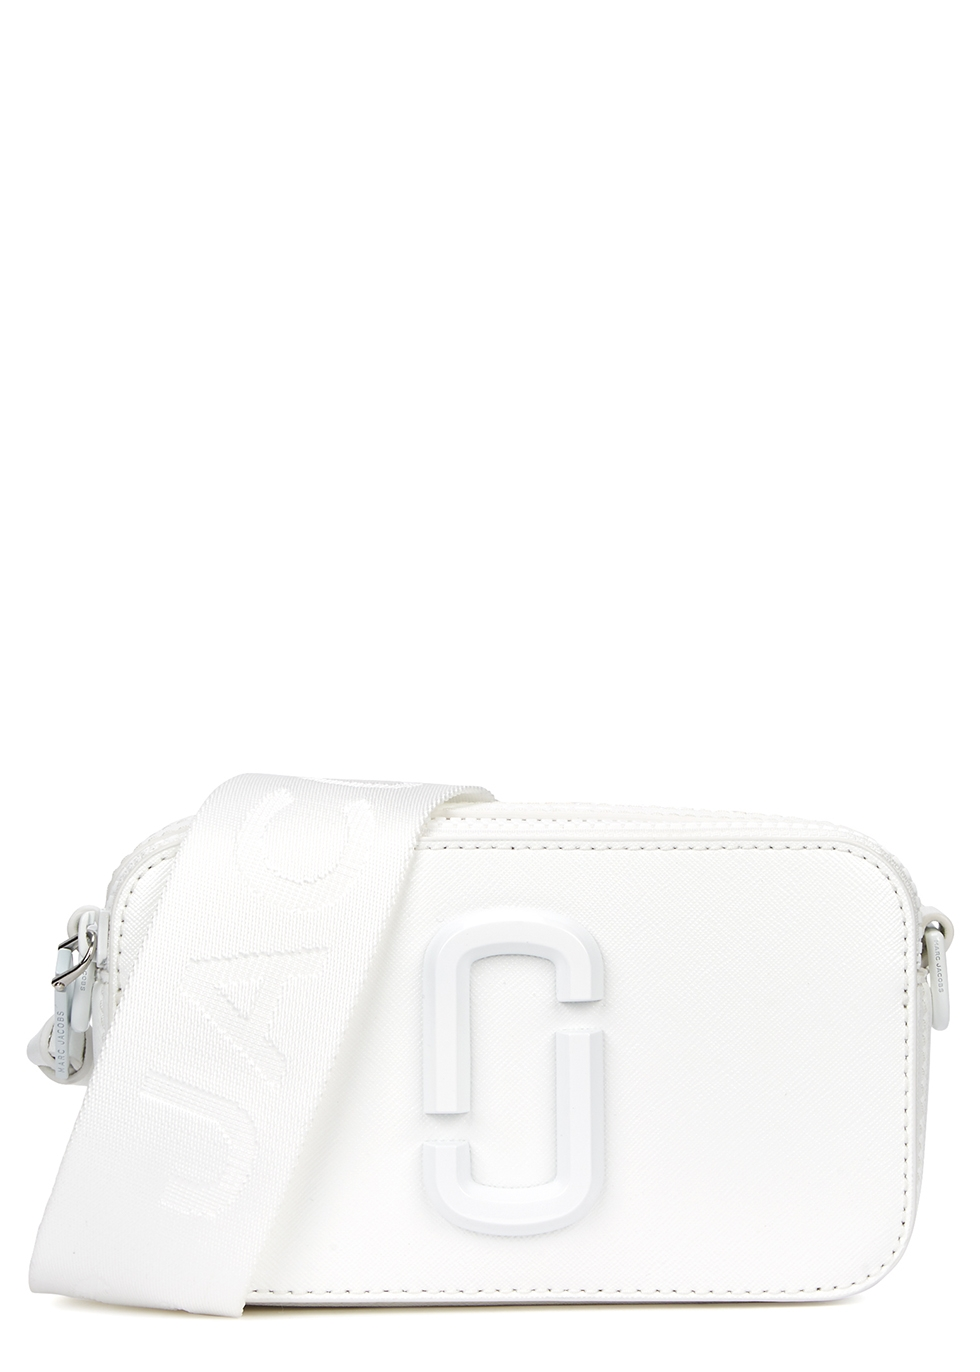 MARC JACOBS | Marc Jacobs Snapshot DTM White Leather Cross-Body Bag | Goxip